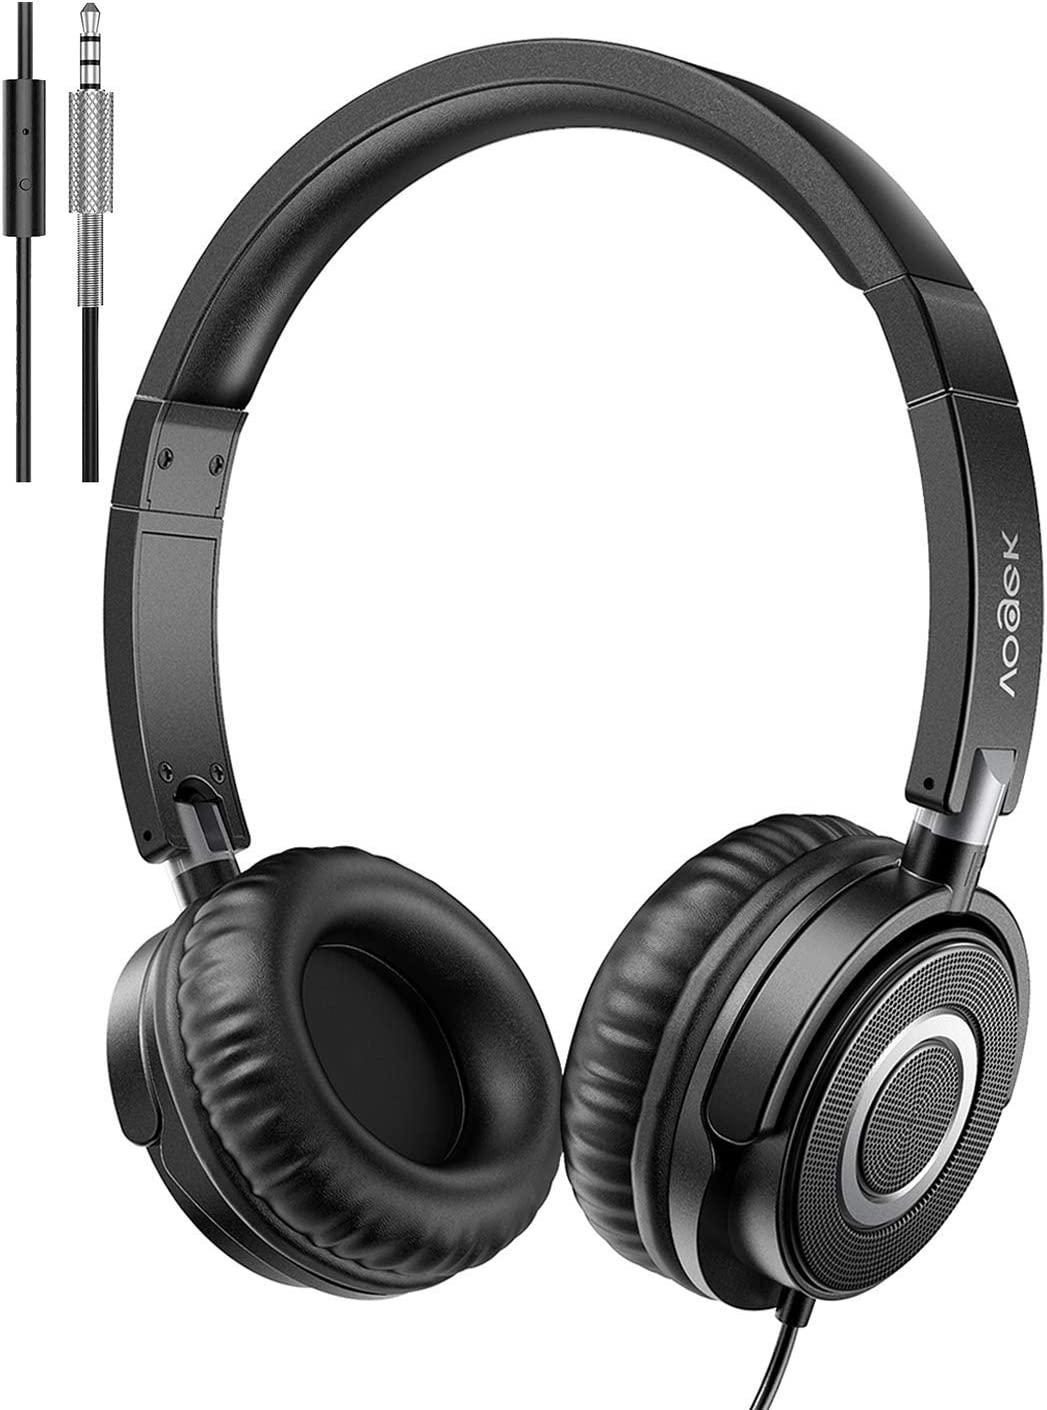 VOGEK On Ear Headphones with Mic, Lightweight Portable Fold-Flat Stereo Bass Headphones with 1.5M Tangle Free Cord and Microphone-Black: Electronics